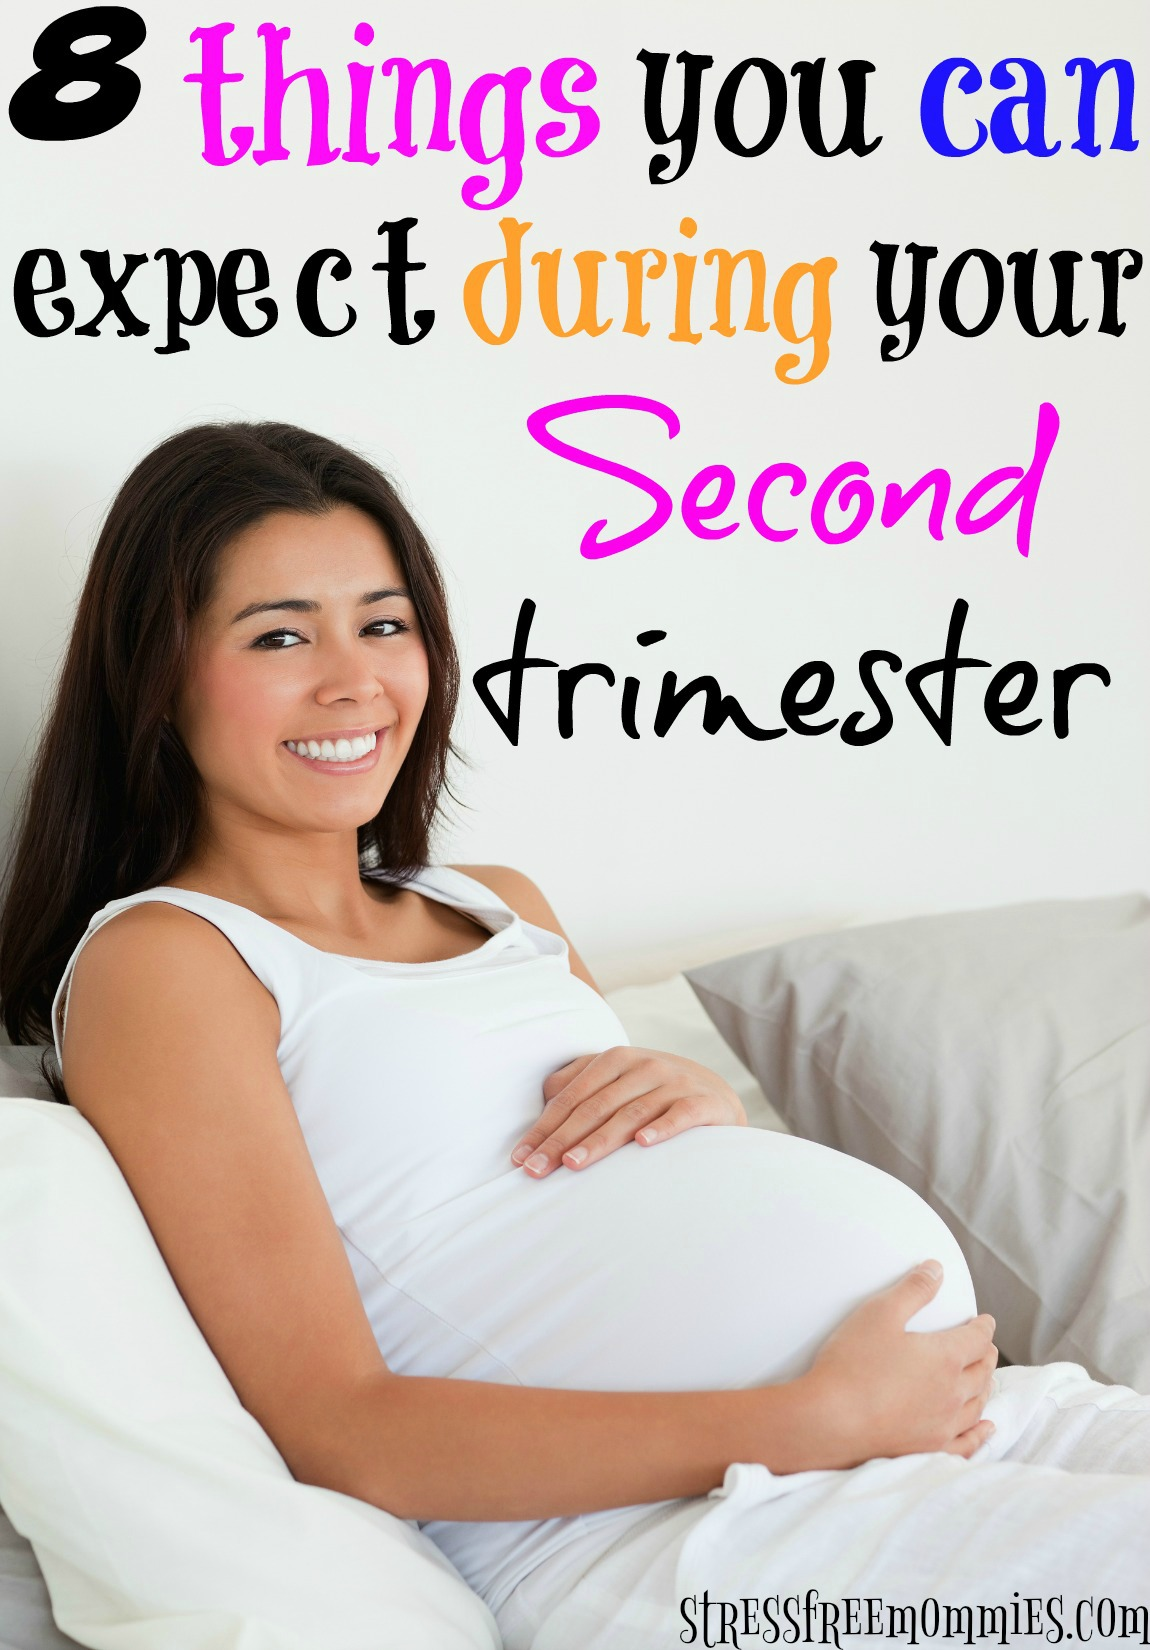 Are you pregnant and curious to know what to expect during your second trimester? This article is for you! Learn how you  are going to feel physically and emotionally, what doctors appointments to look forward to and more! Check this helpful second trimester guide:)